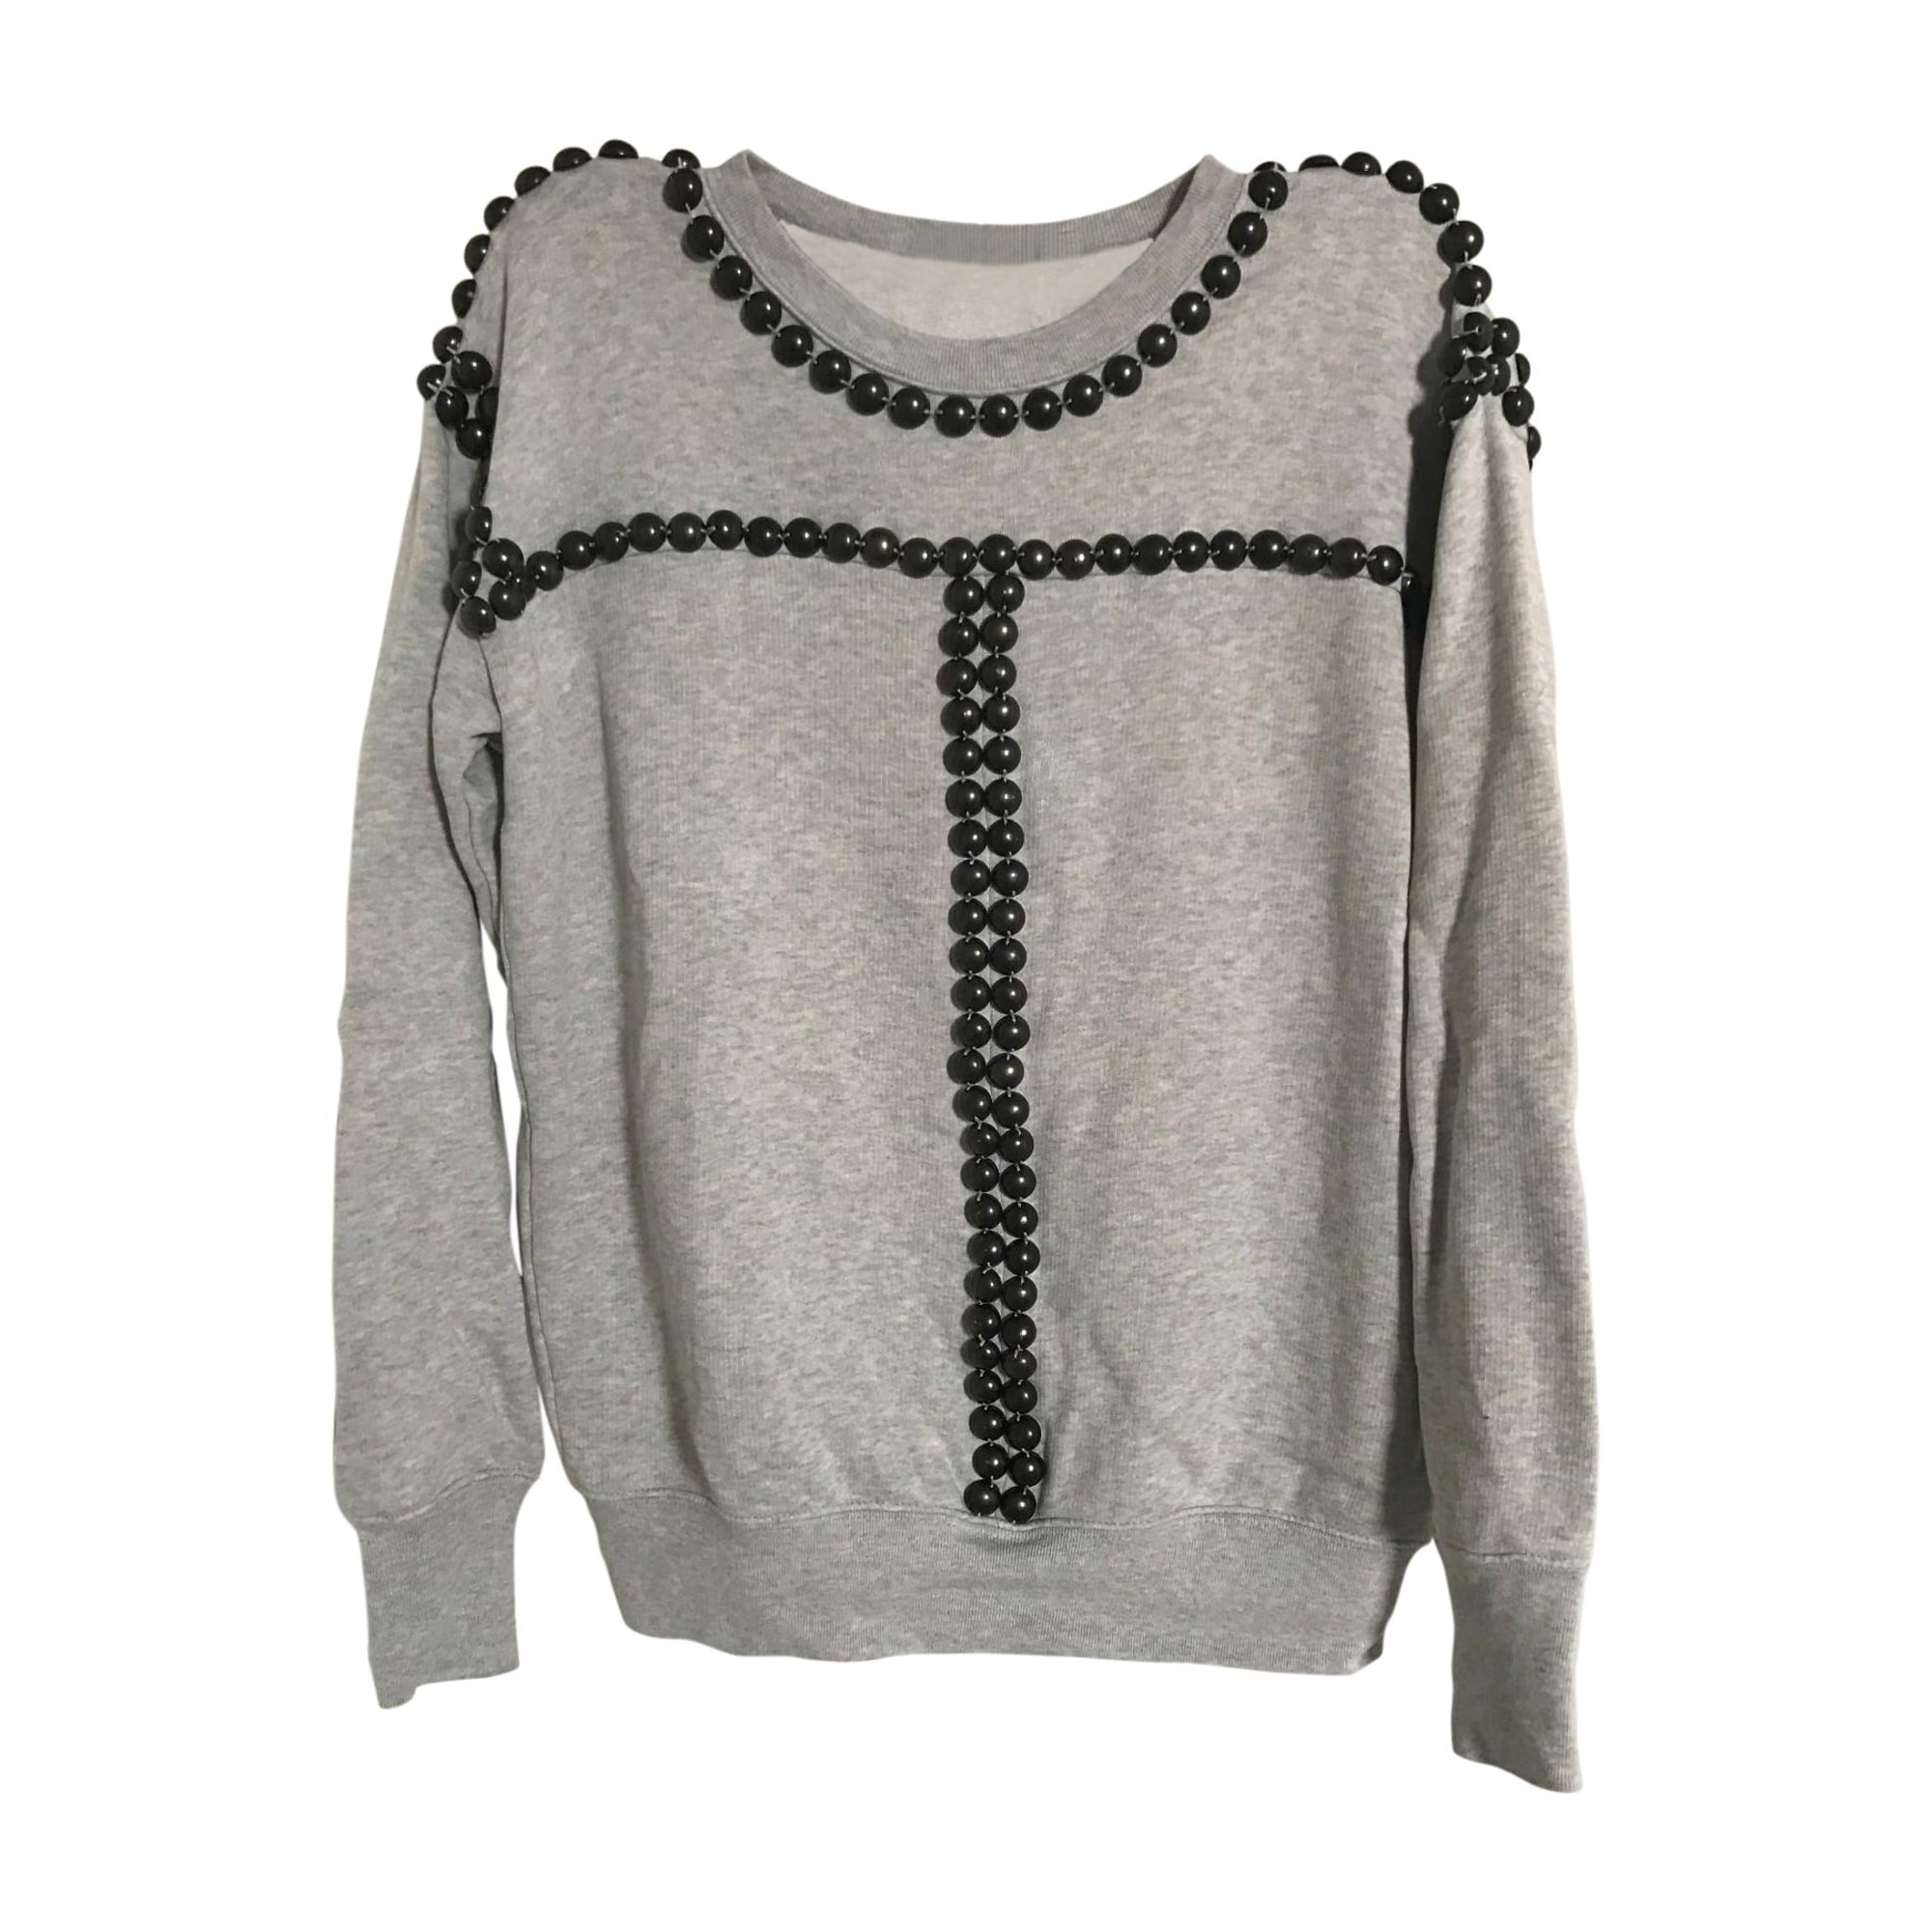 Sweatshirt ISABEL MARANT Gray, charcoal